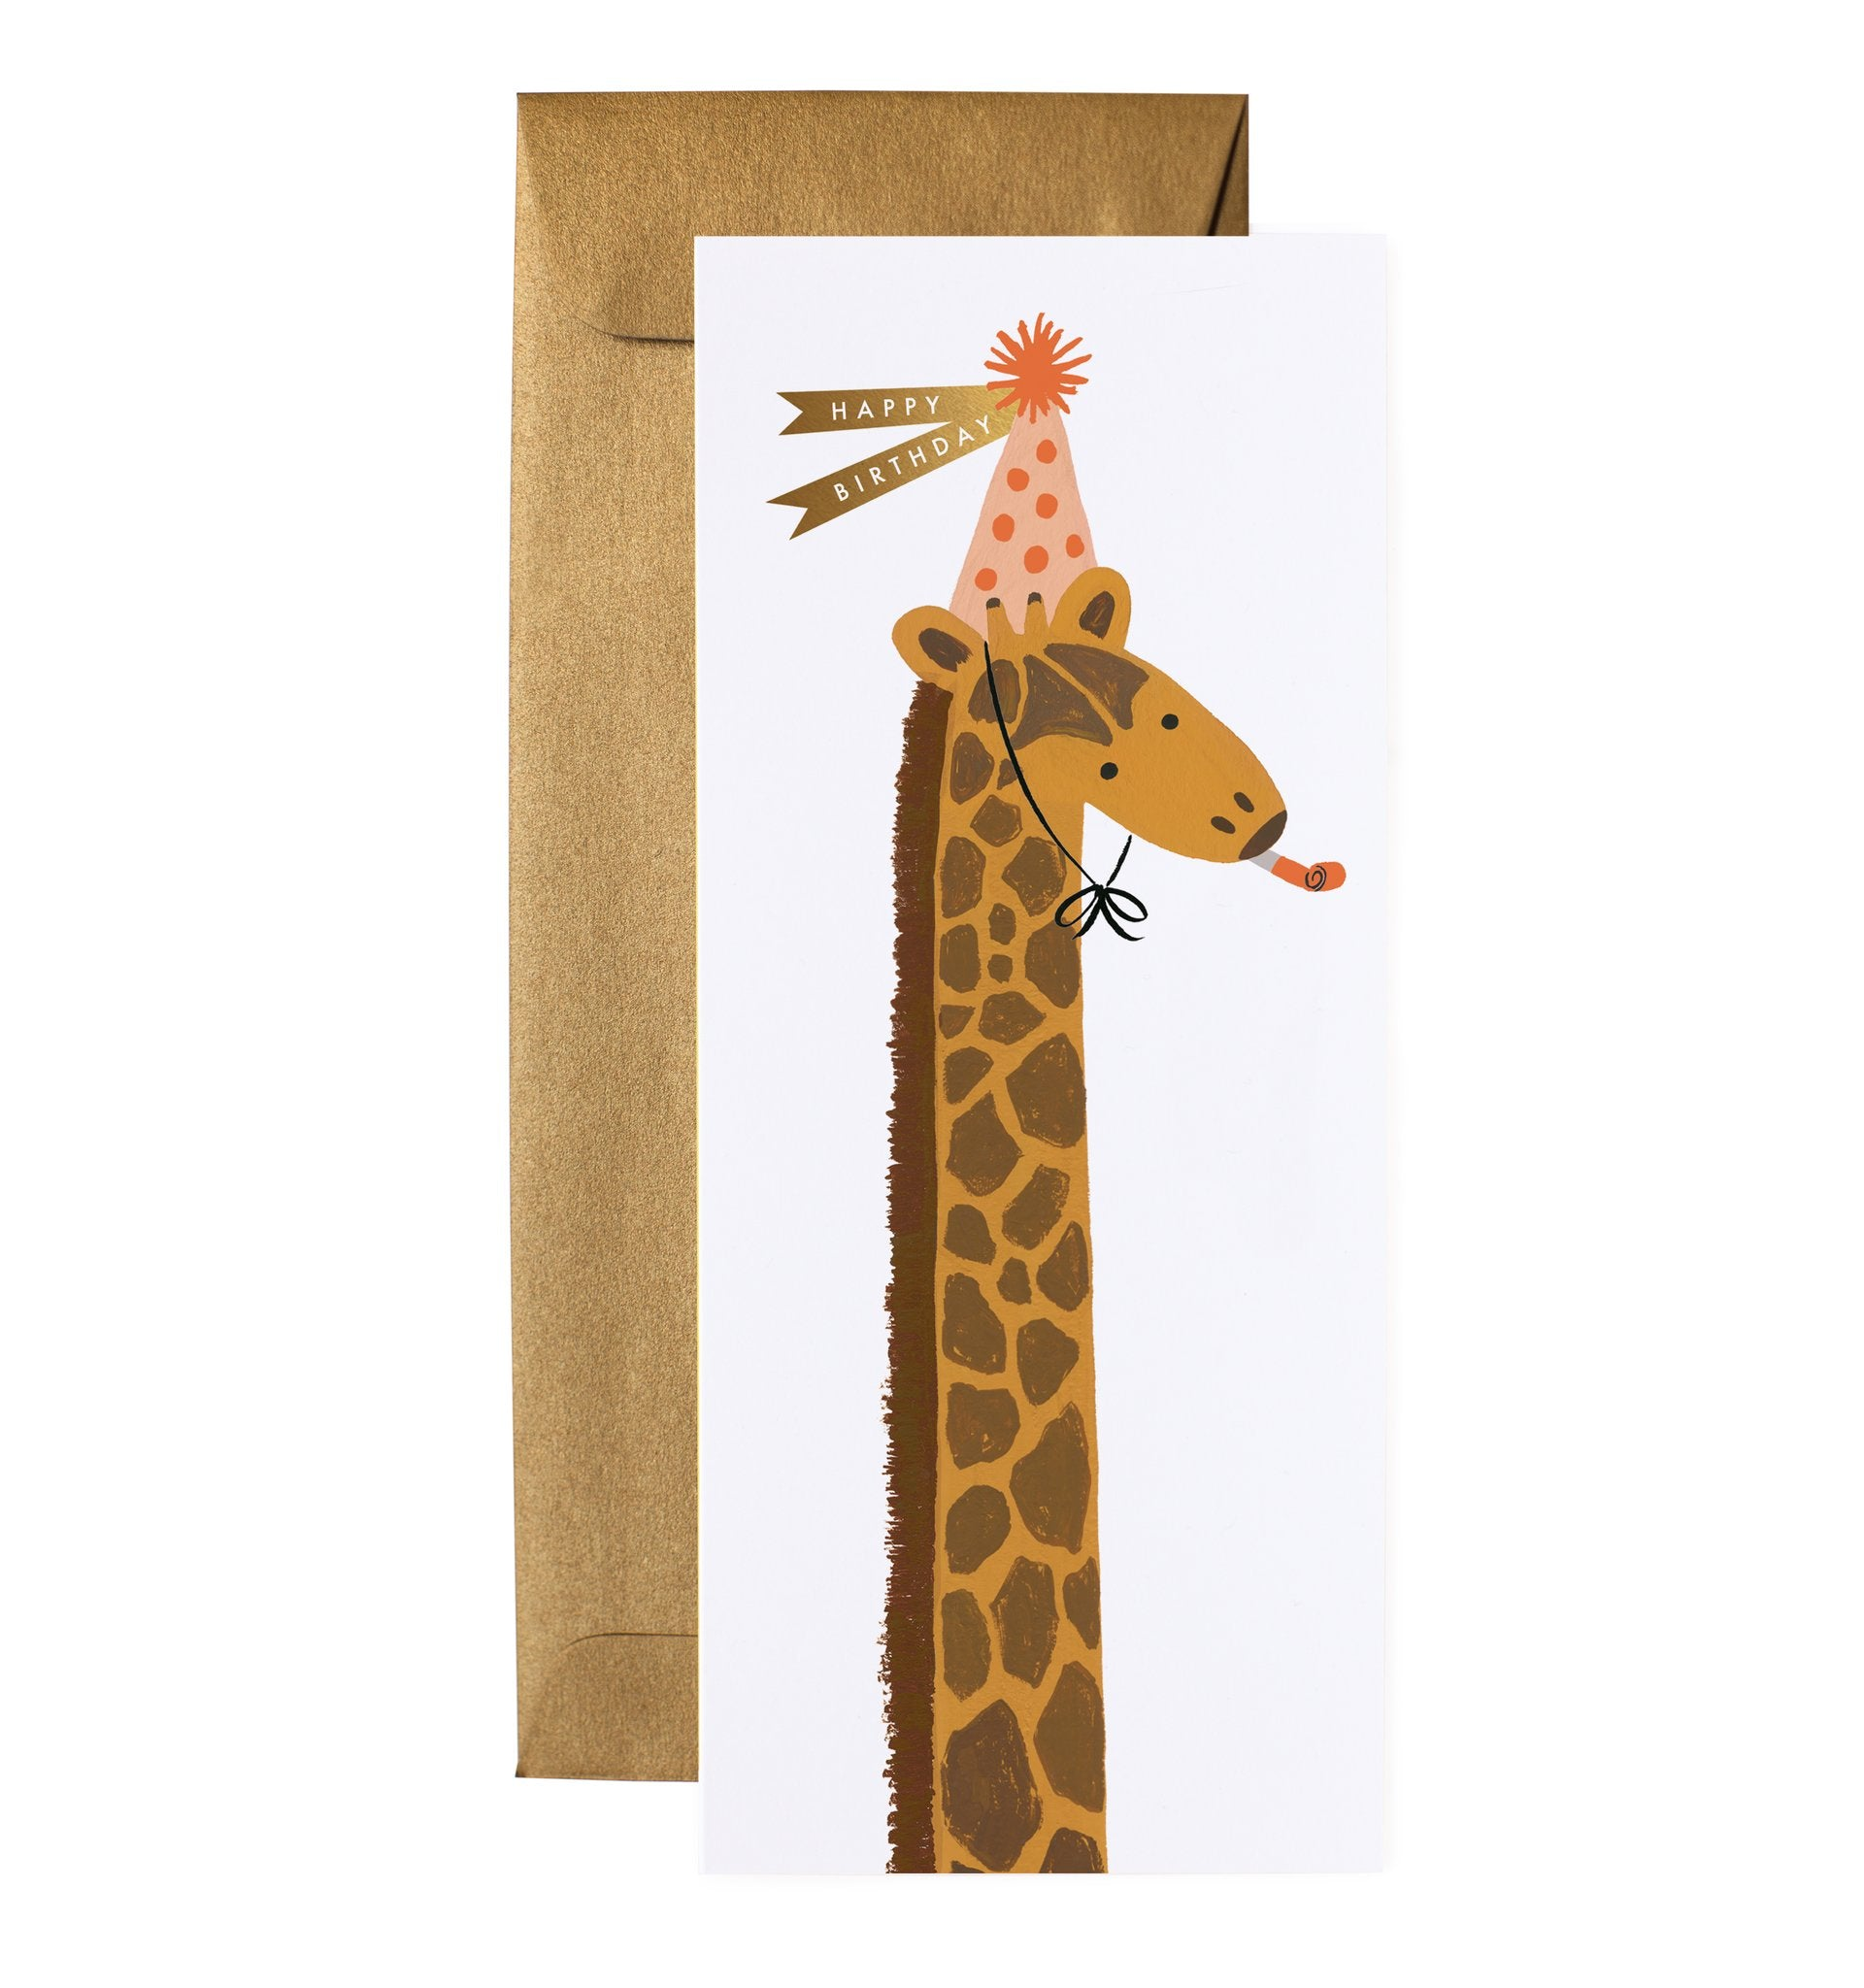 'Giraffe Birthday' Greetings Card — The Tetley Shop